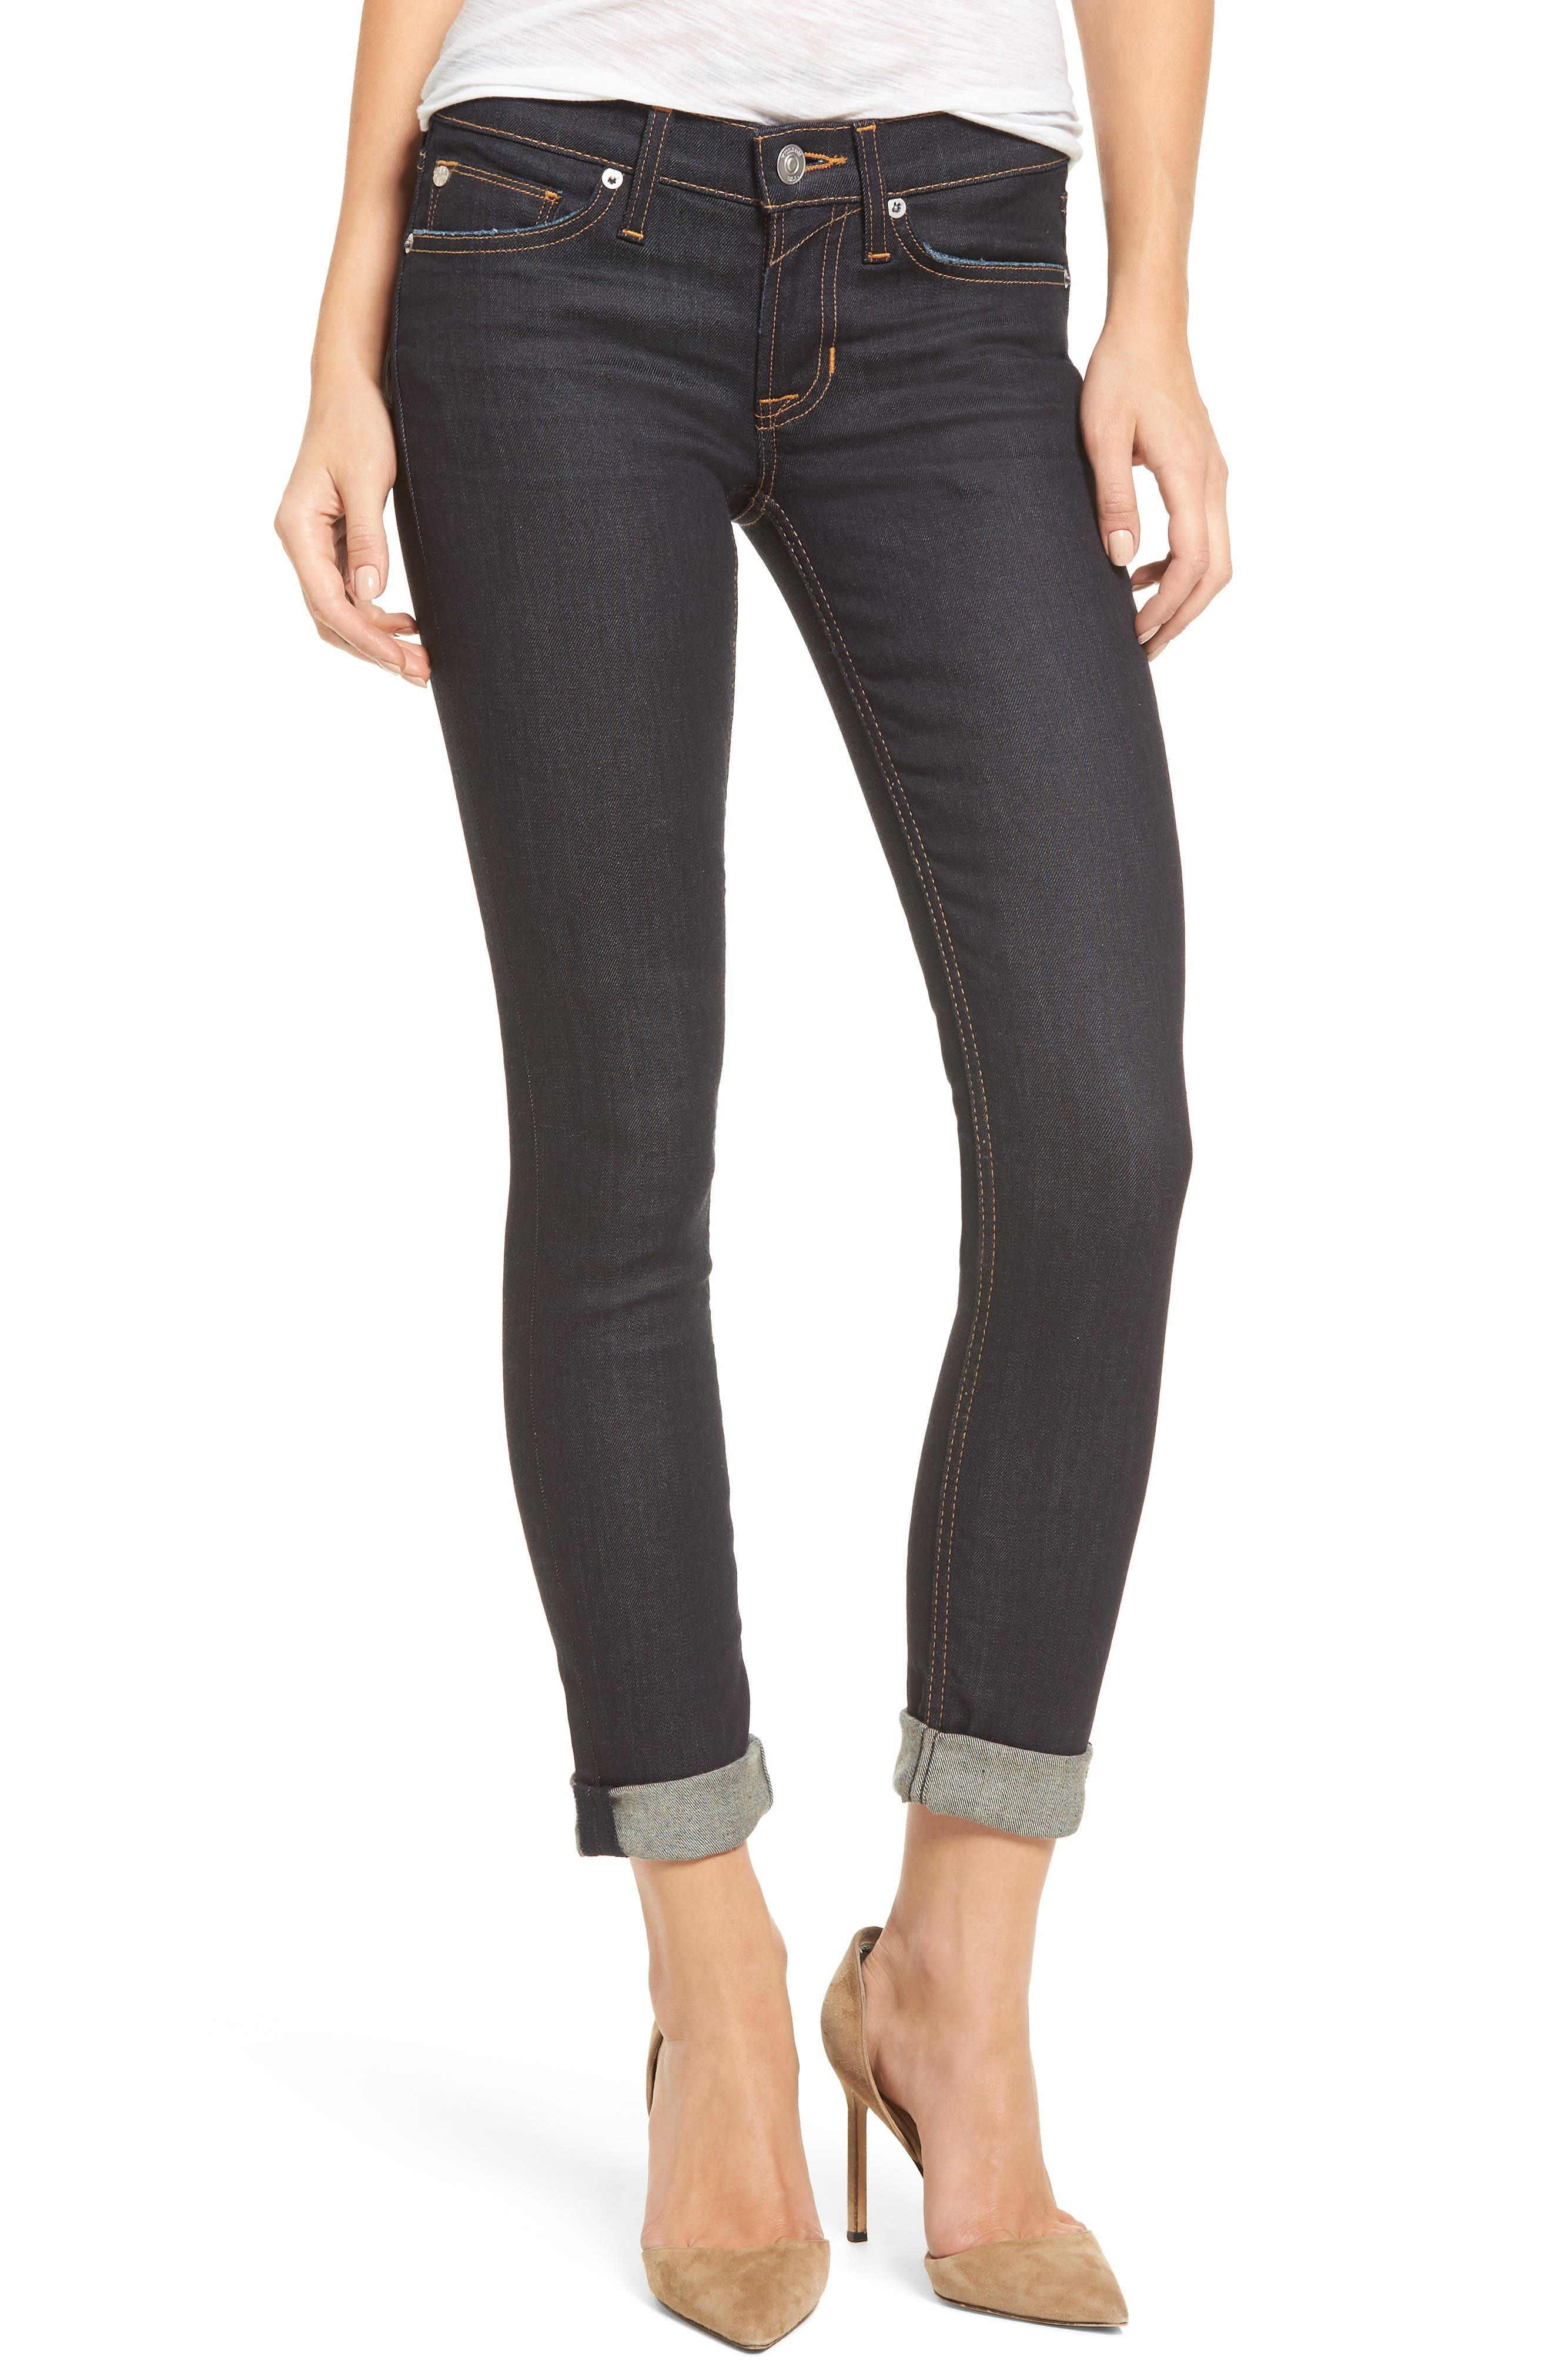 Main Image - Hudson Jeans Tally Crop Skinny Jeans (Contender)